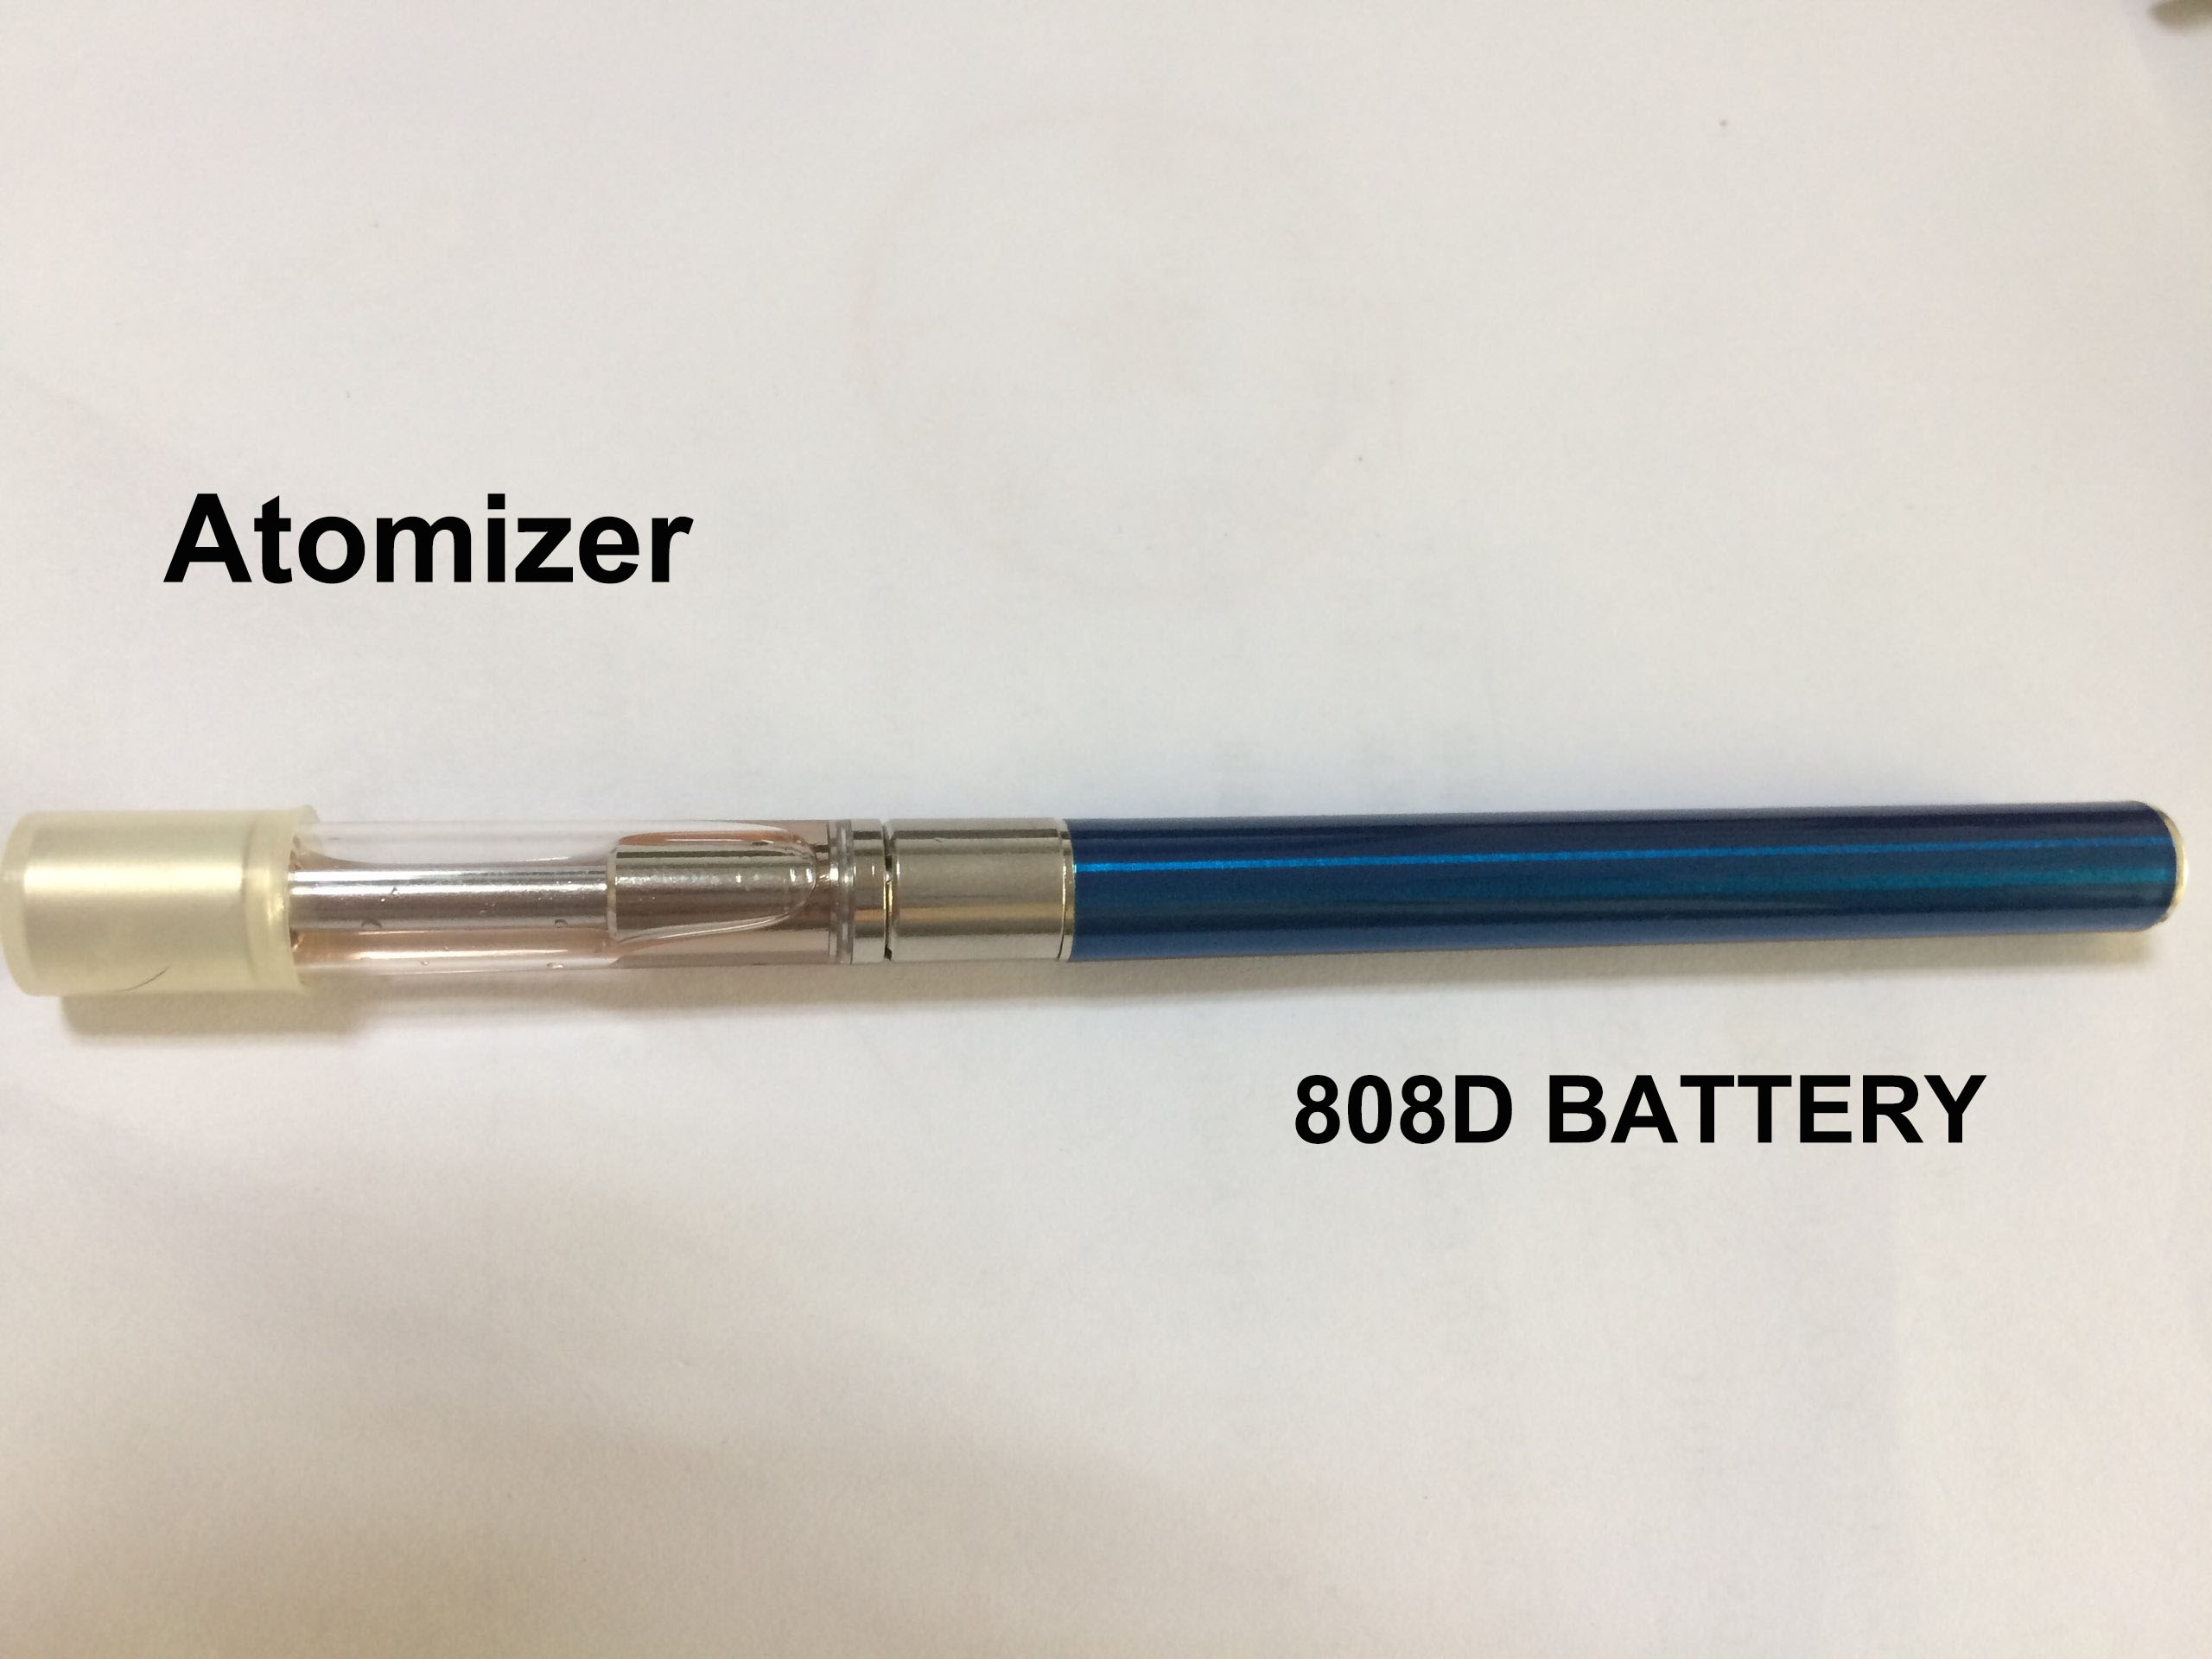 808d battery connect atomizer